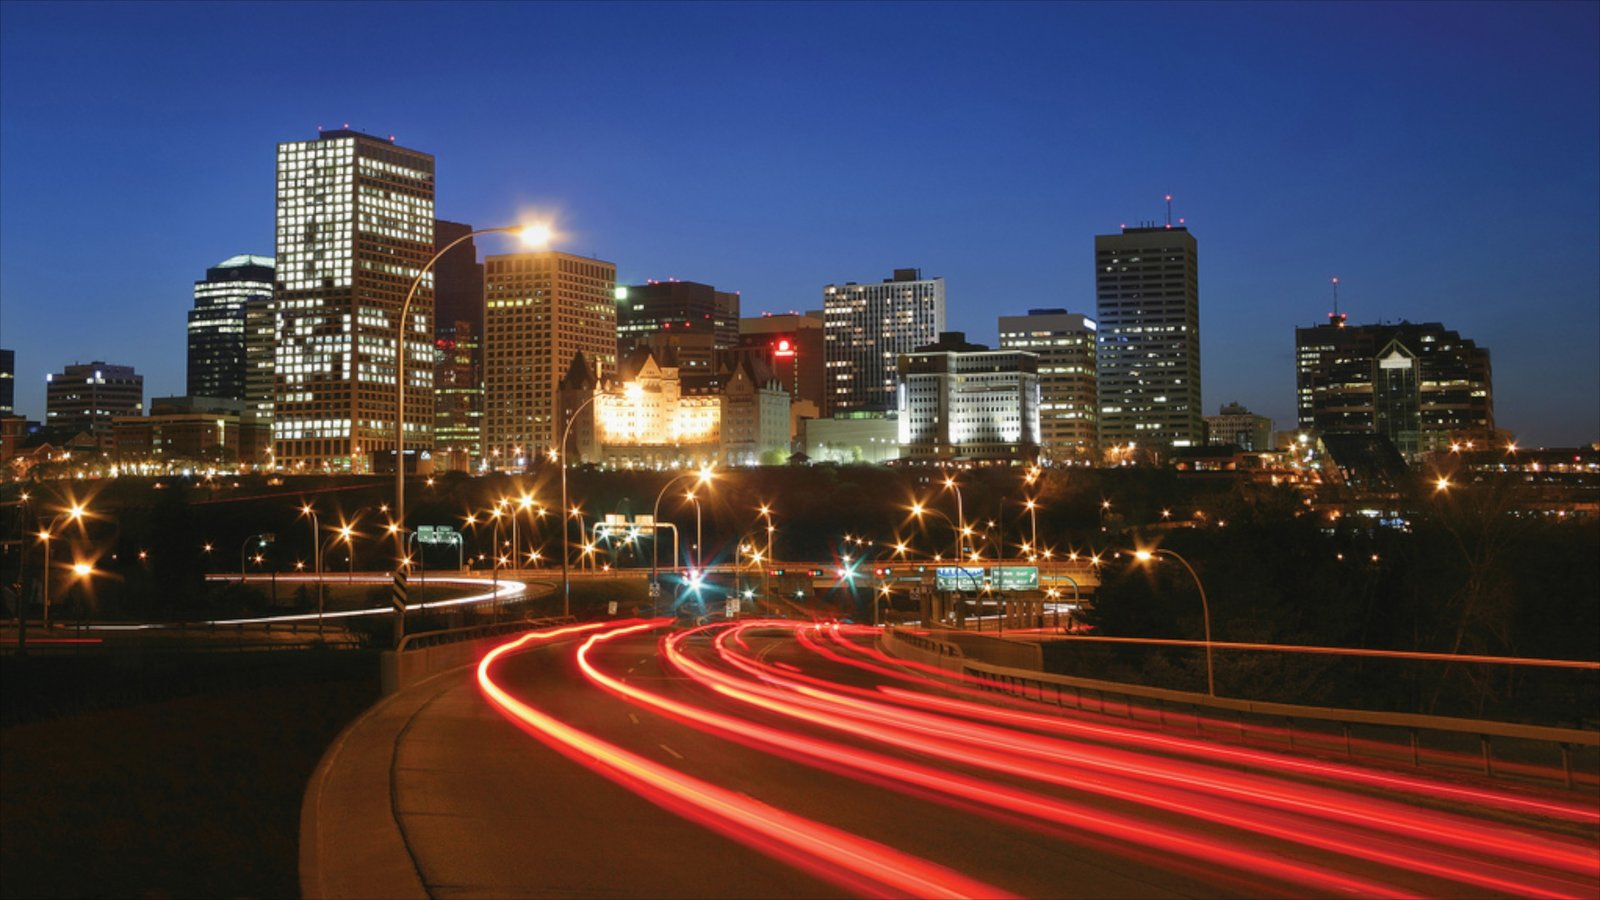 Edmonton featuring night scenes and a city